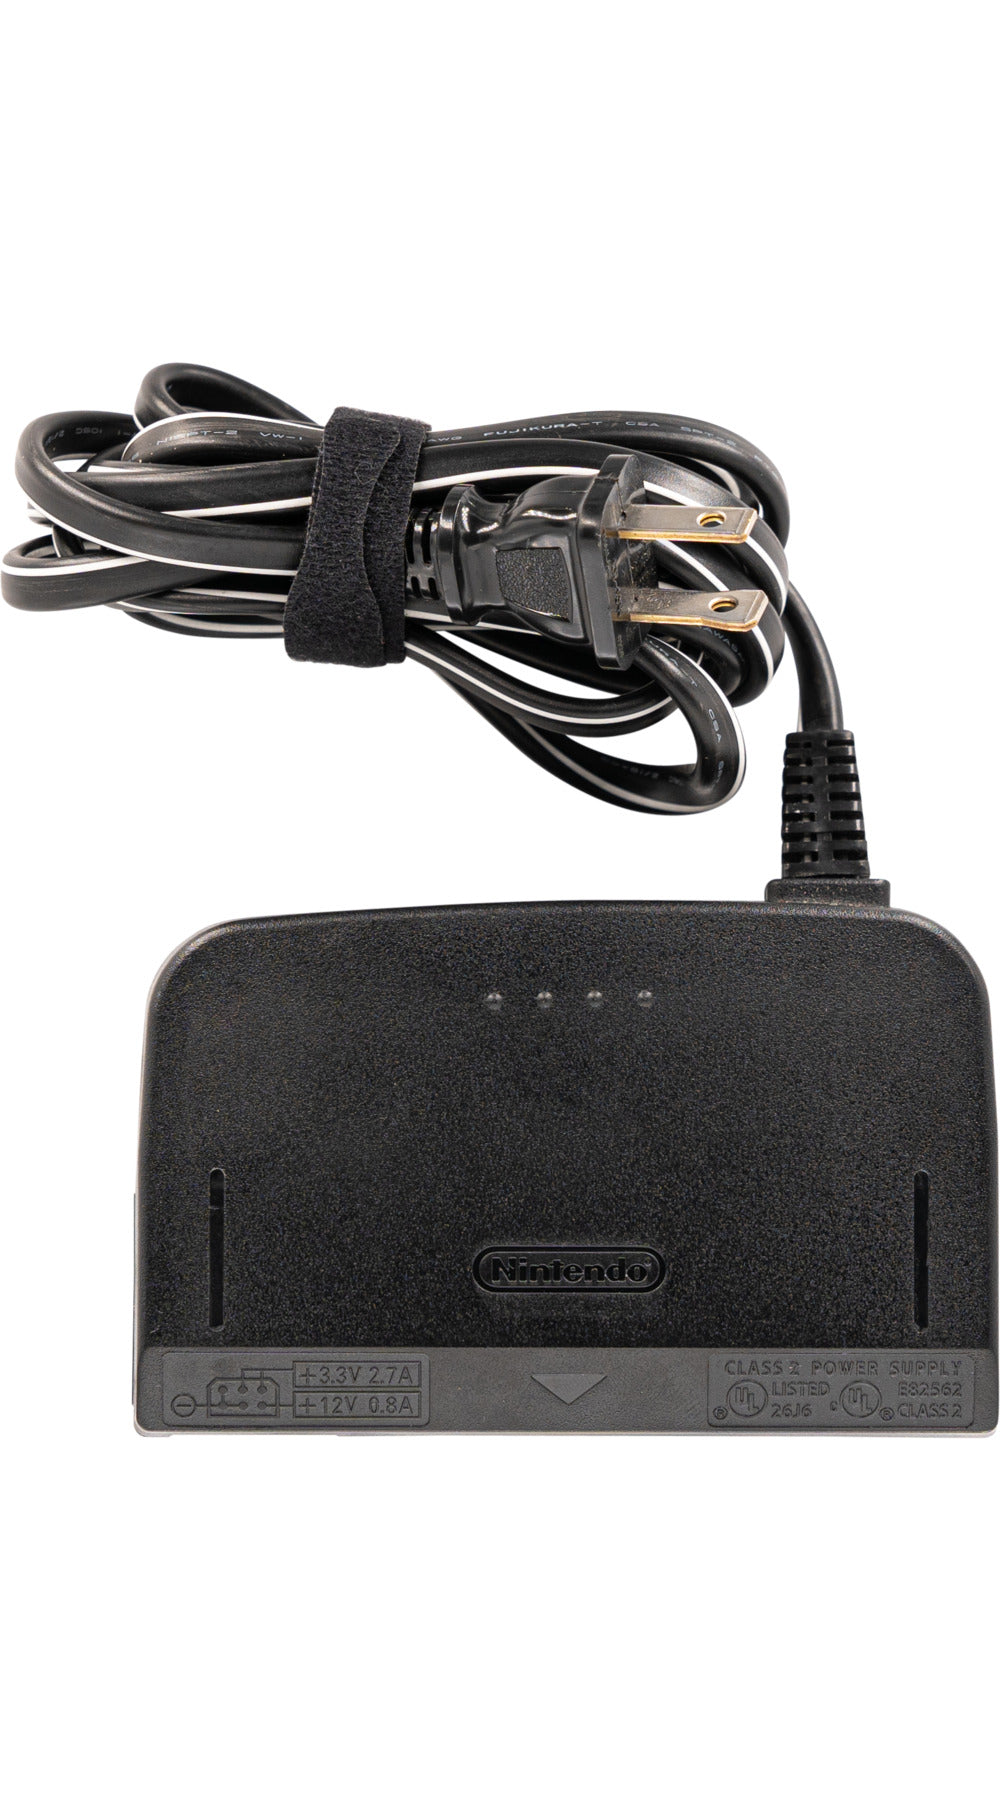 N64 AC Power Adapter - Video Game Delivery